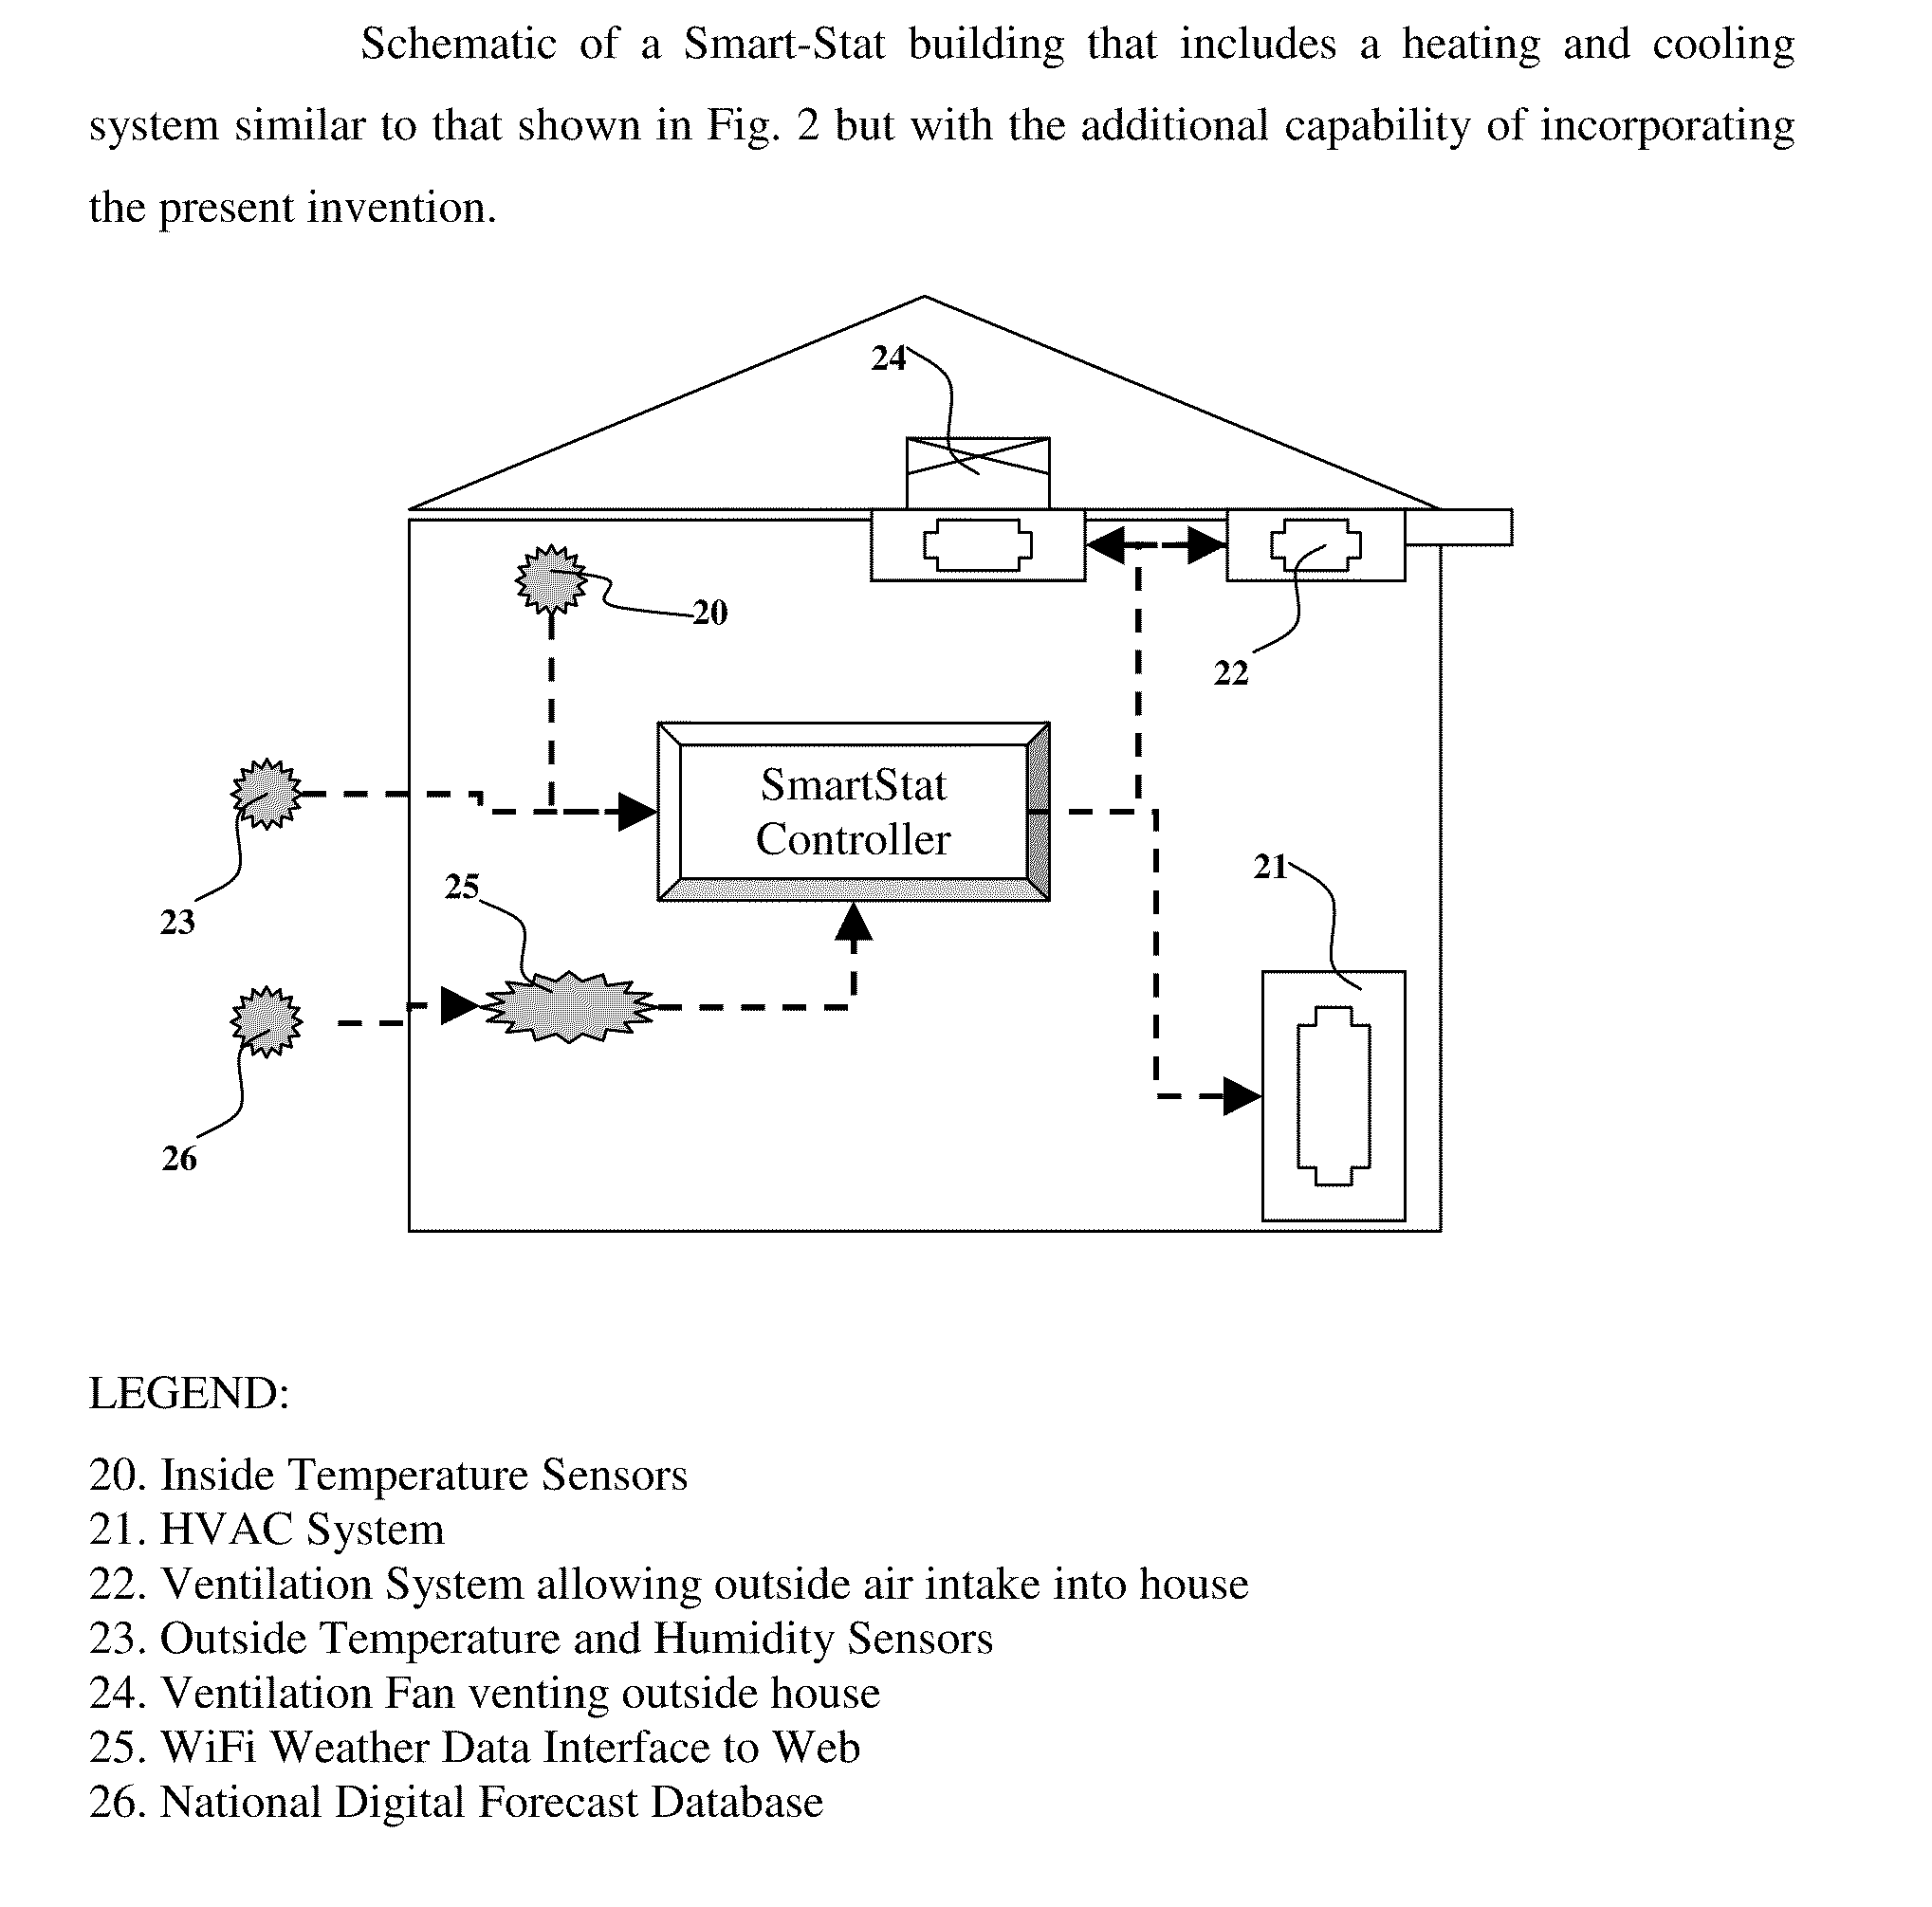 collection humidifier wiring diagram lennox pictures wire ranco humidistat wiring diagram ewiring humidistat car wiring diagram ranco humidistat wiring diagram ewiring humidistat car wiring diagram